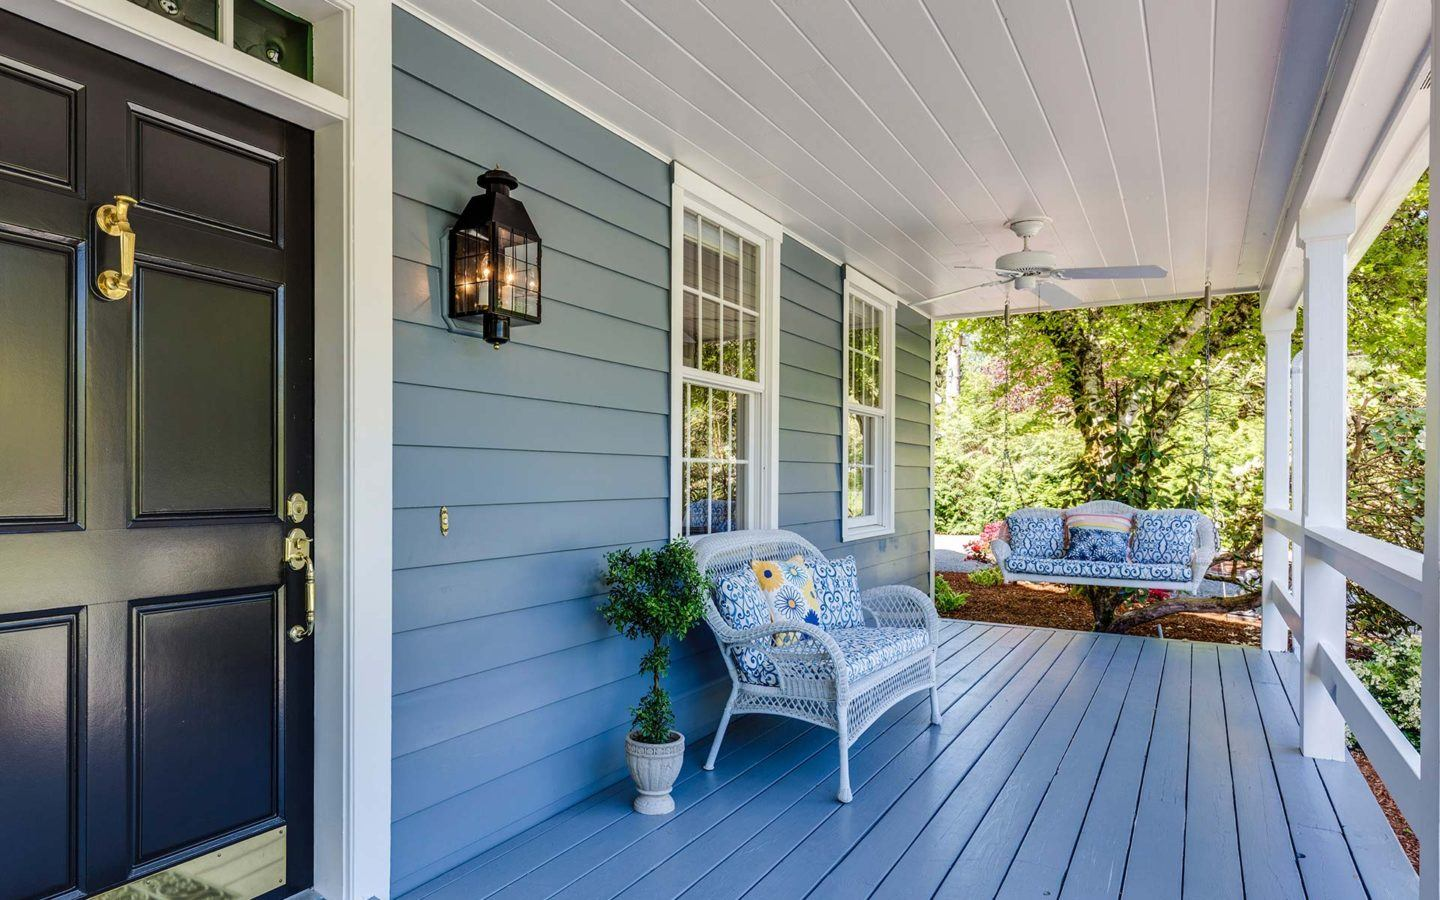 blue painted front porch and home with blue siding a porch swing and arm chair